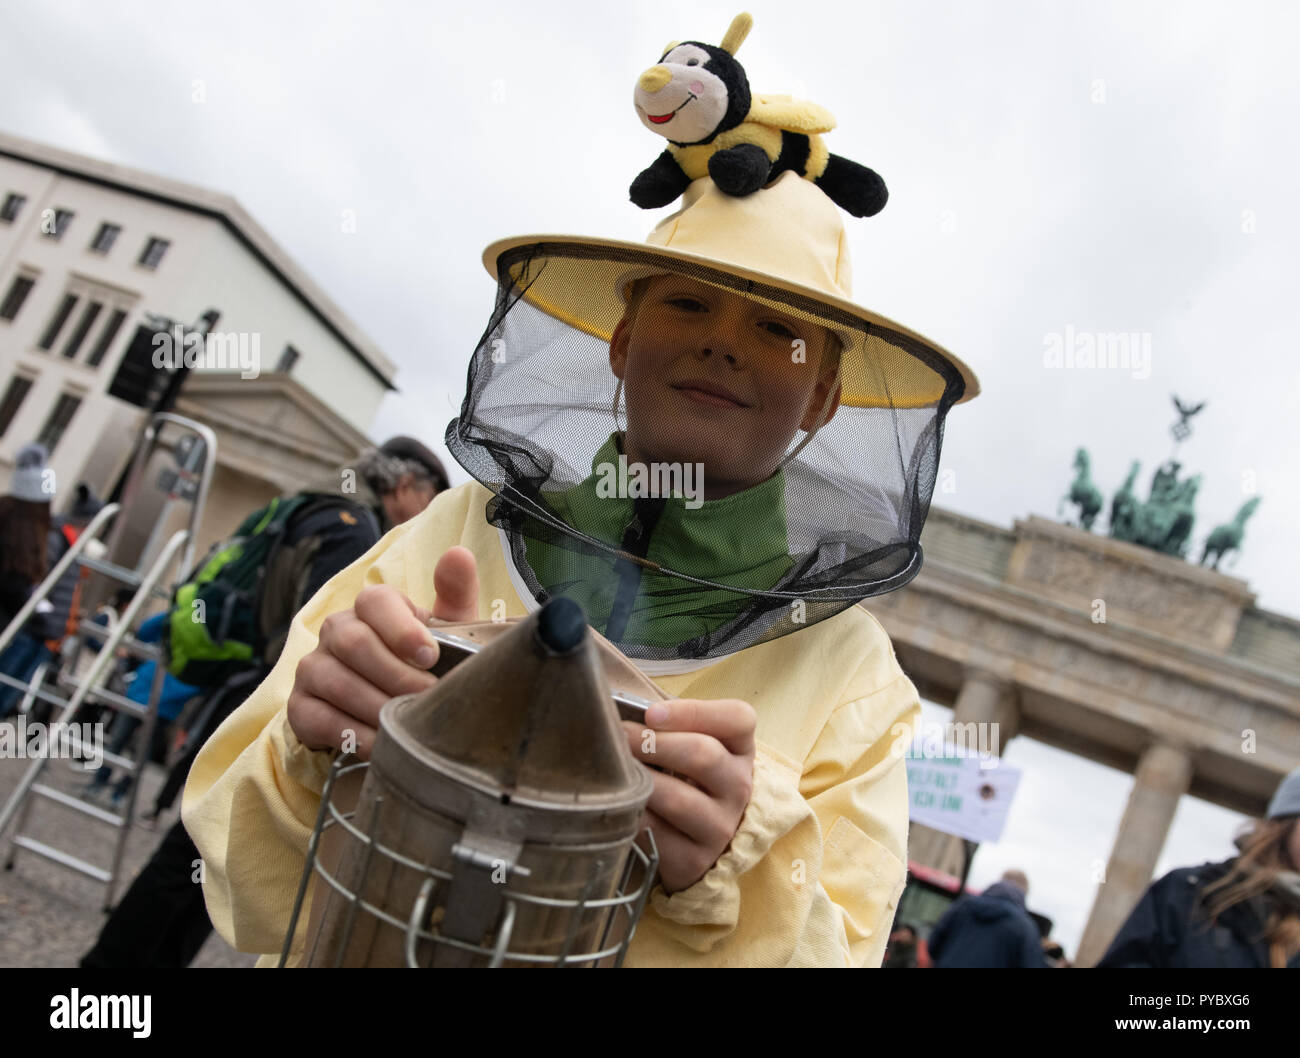 Berlin, Germany. 27th Oct, 2018. Ten-year-old Noah from Arnsberg wearing a beekeeper's protective suit and standing at a protest rally for sustainable agricultural subsidies of the 'we have enough' alliance at the Brandenburg Gate with the motto 'Make steam for bee-friendly agriculture'. Credit: Paul Zinken/dpa/Alamy Live News - Stock Image